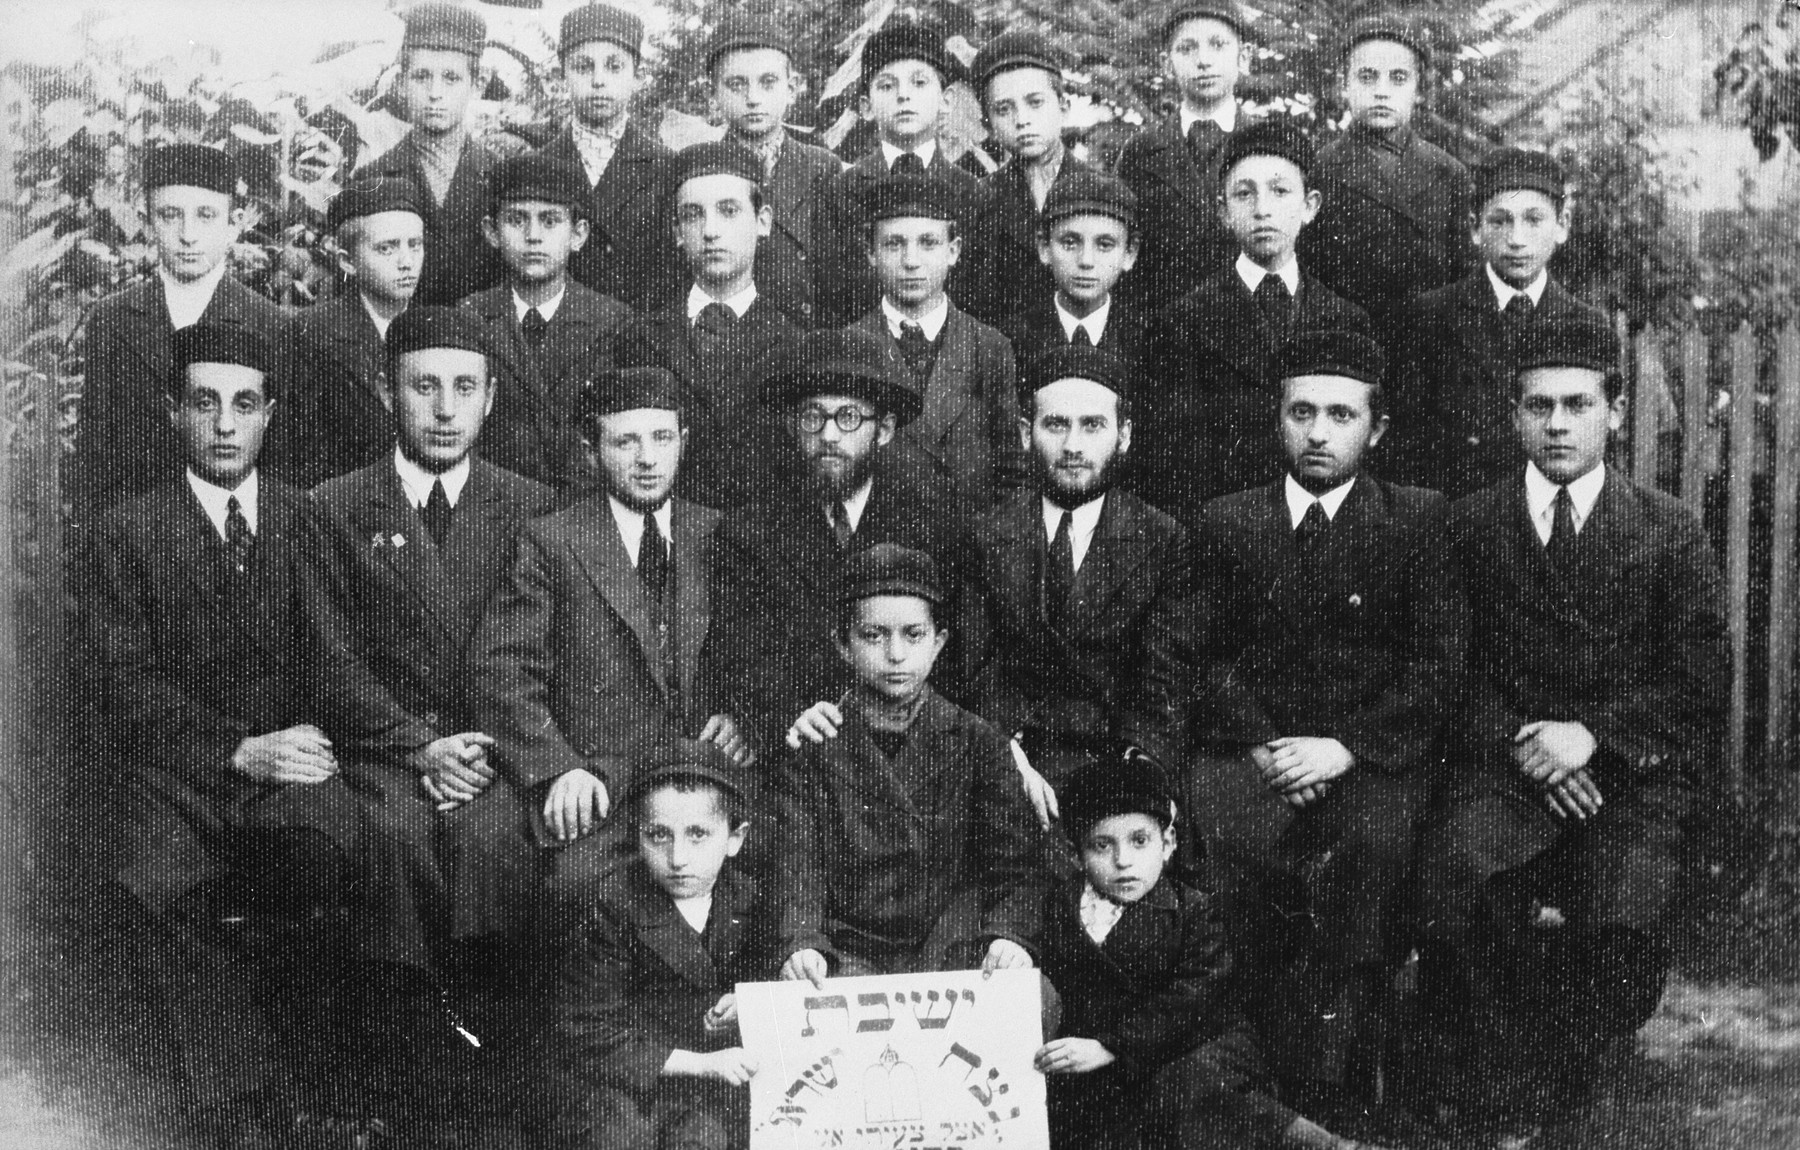 Group portrait of students and rabbis at the Netzach Yisrael Yeshiva in Bedzin.